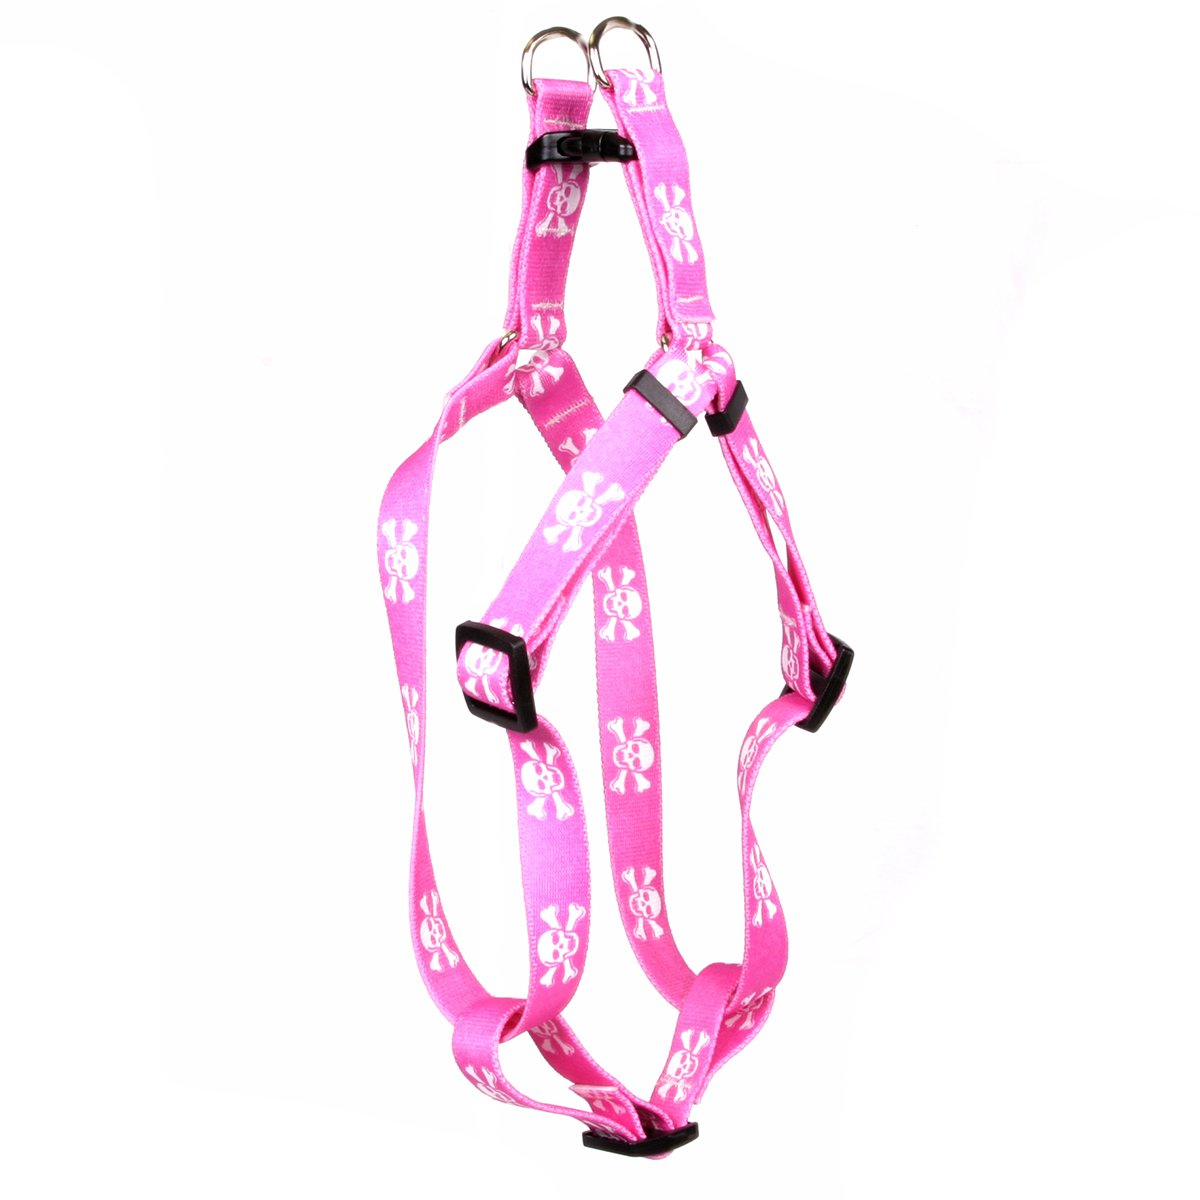 Yellow Dog Design Pink Skulls Step-in Dog Harness, X-Small-3/8 Wide and fits Chest of 4.5 to 9''